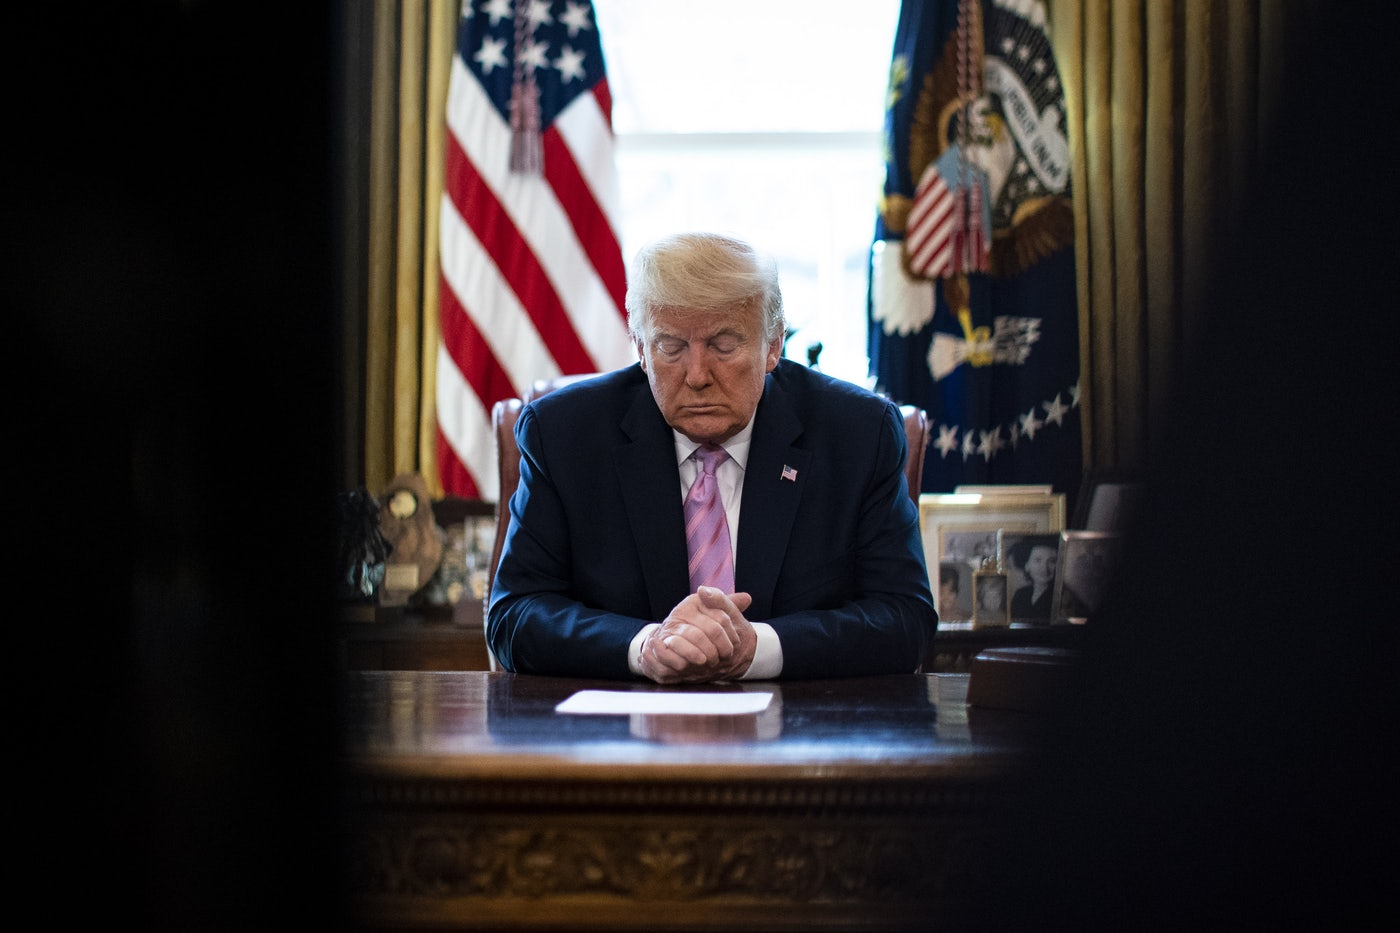 President Donald Trump bows his head in the Oval Office of the White House